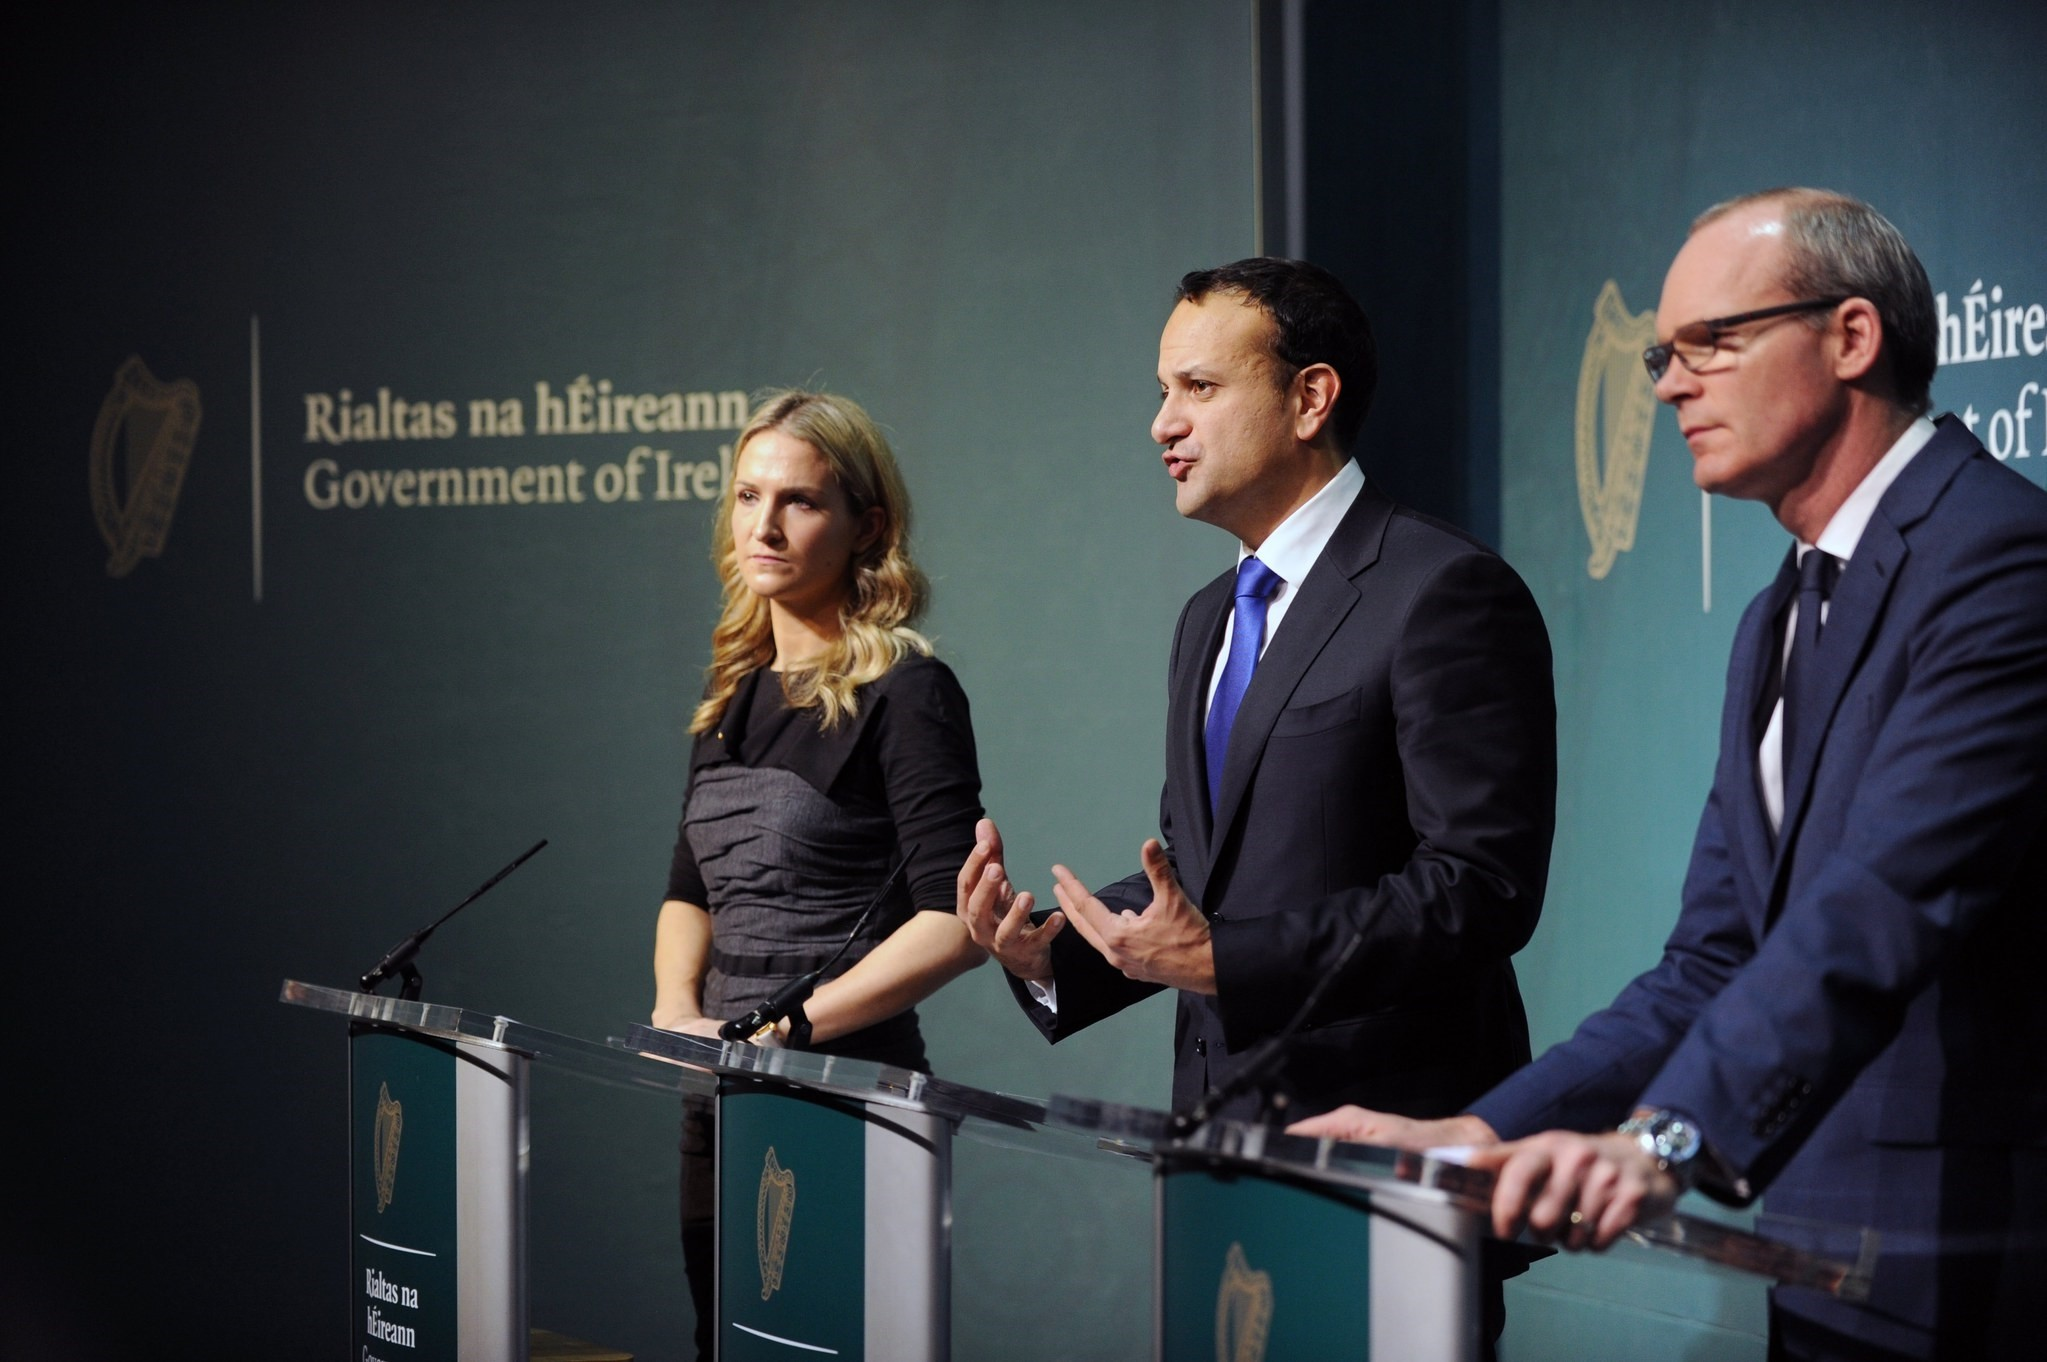 Irish Prime Minister, An Taoiseach, Leo Varadkar (C) and his Foreign Minister Simon Coveney (R) and Ireland's European Minister, Helen McAntee during a press conference in Dublin, Ireland, 04 December 2017. (EPA Photo)